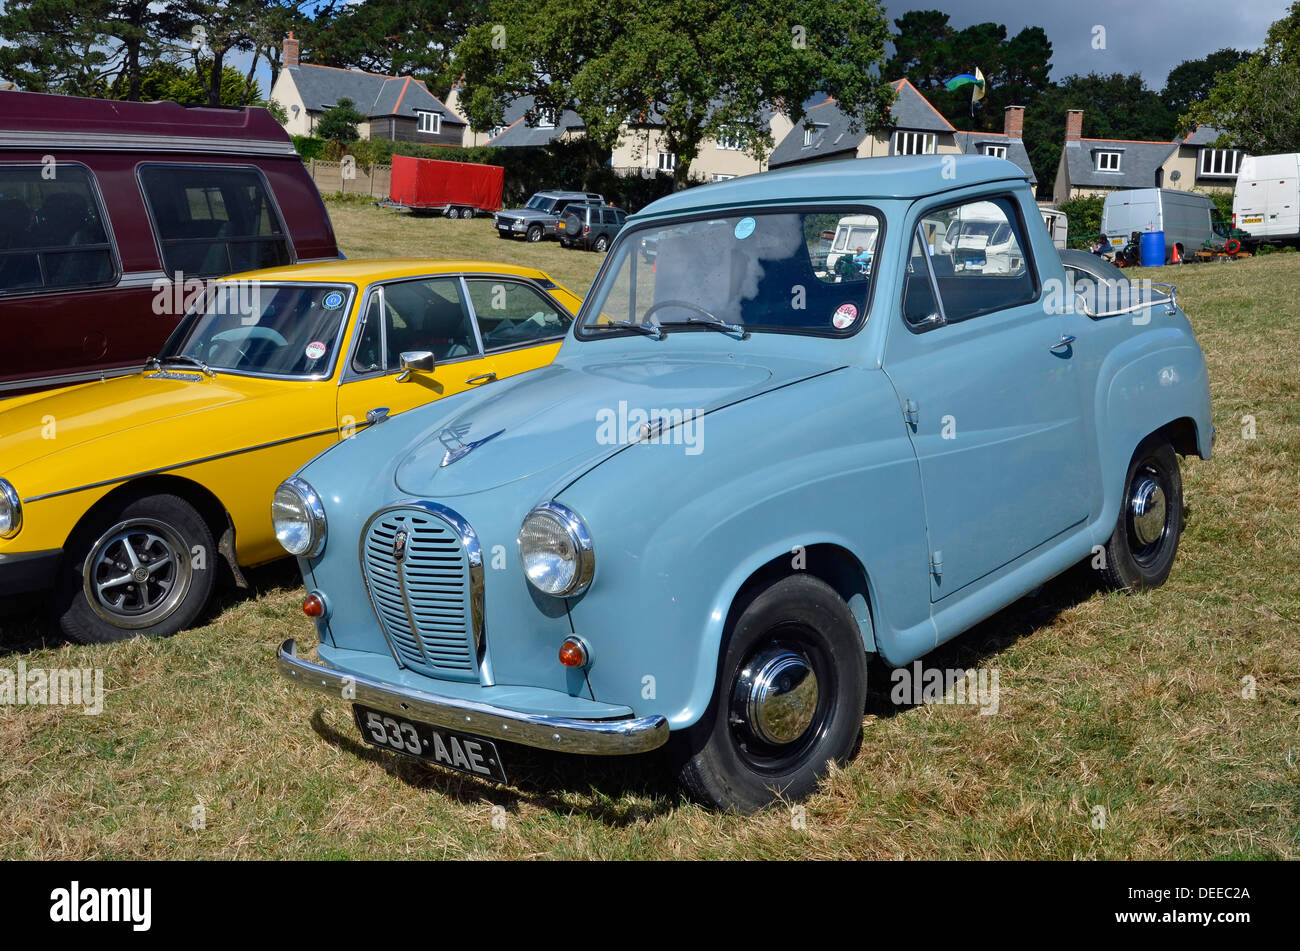 Austin A35 pick-up truck - a classic small British vehicle of the Stock Photo: 60553090 - Alamy